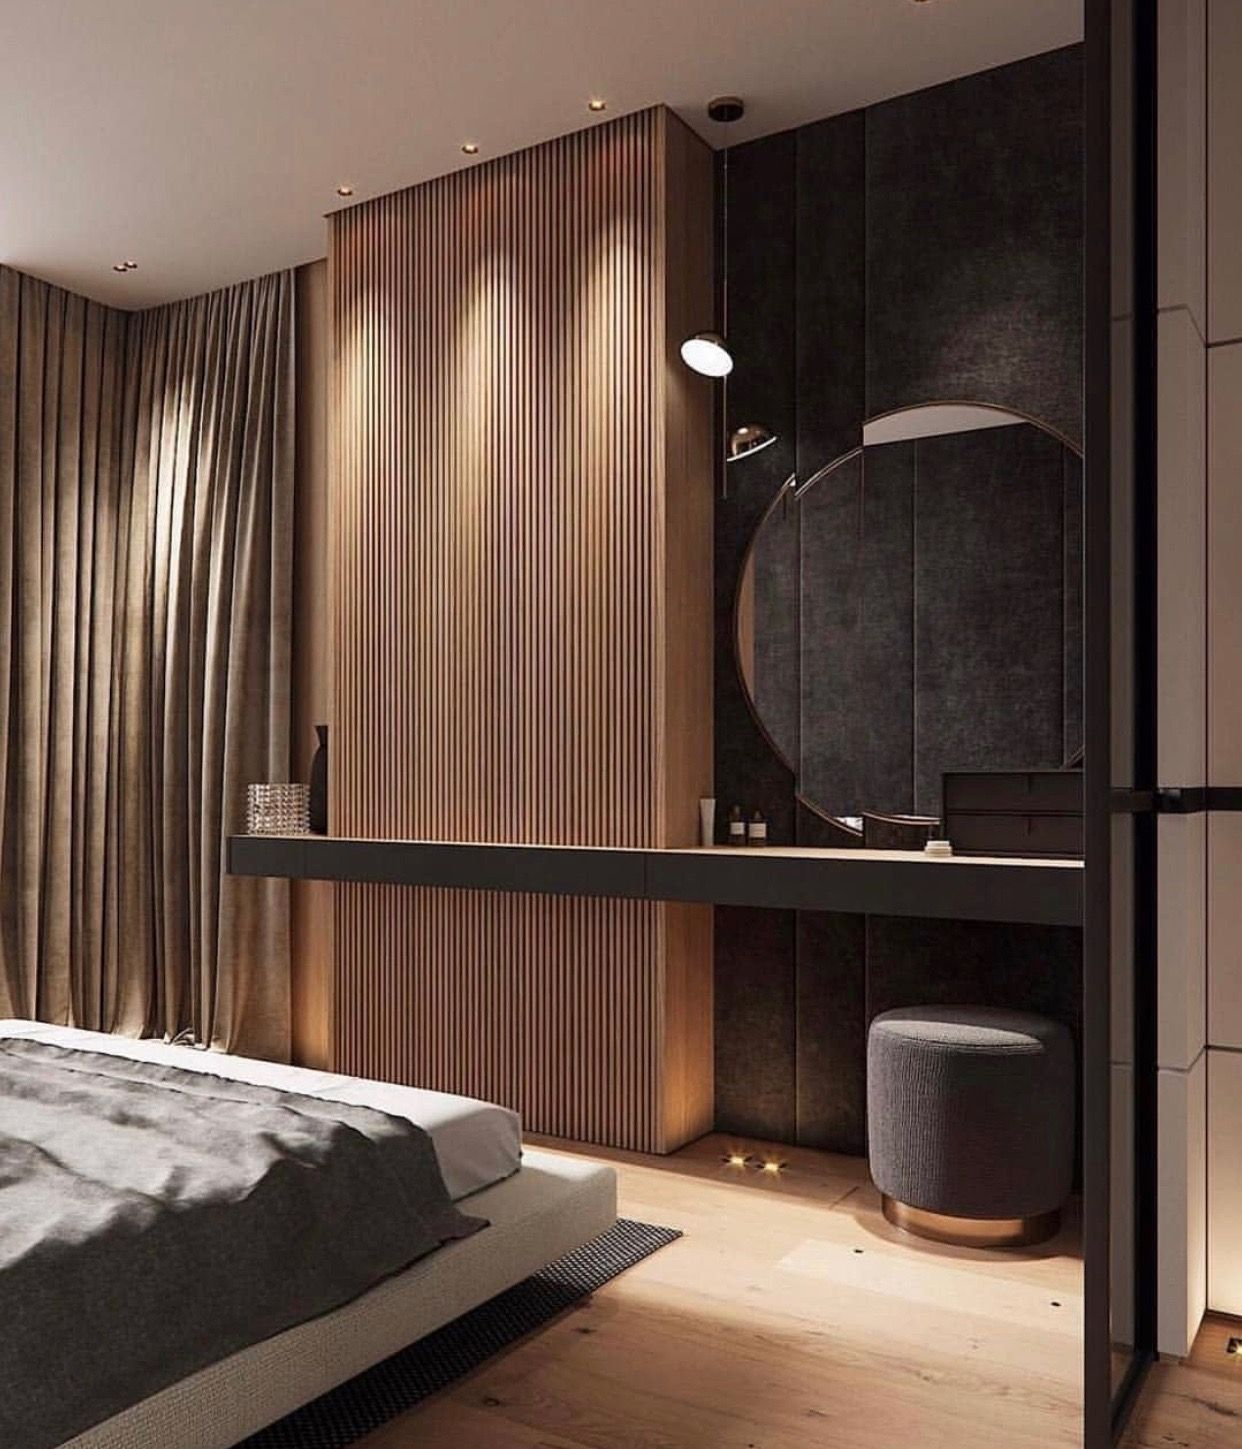 Pin By Cece John On Future Home Master Bedroom Interior Hotel Room Design Luxurious Bedrooms